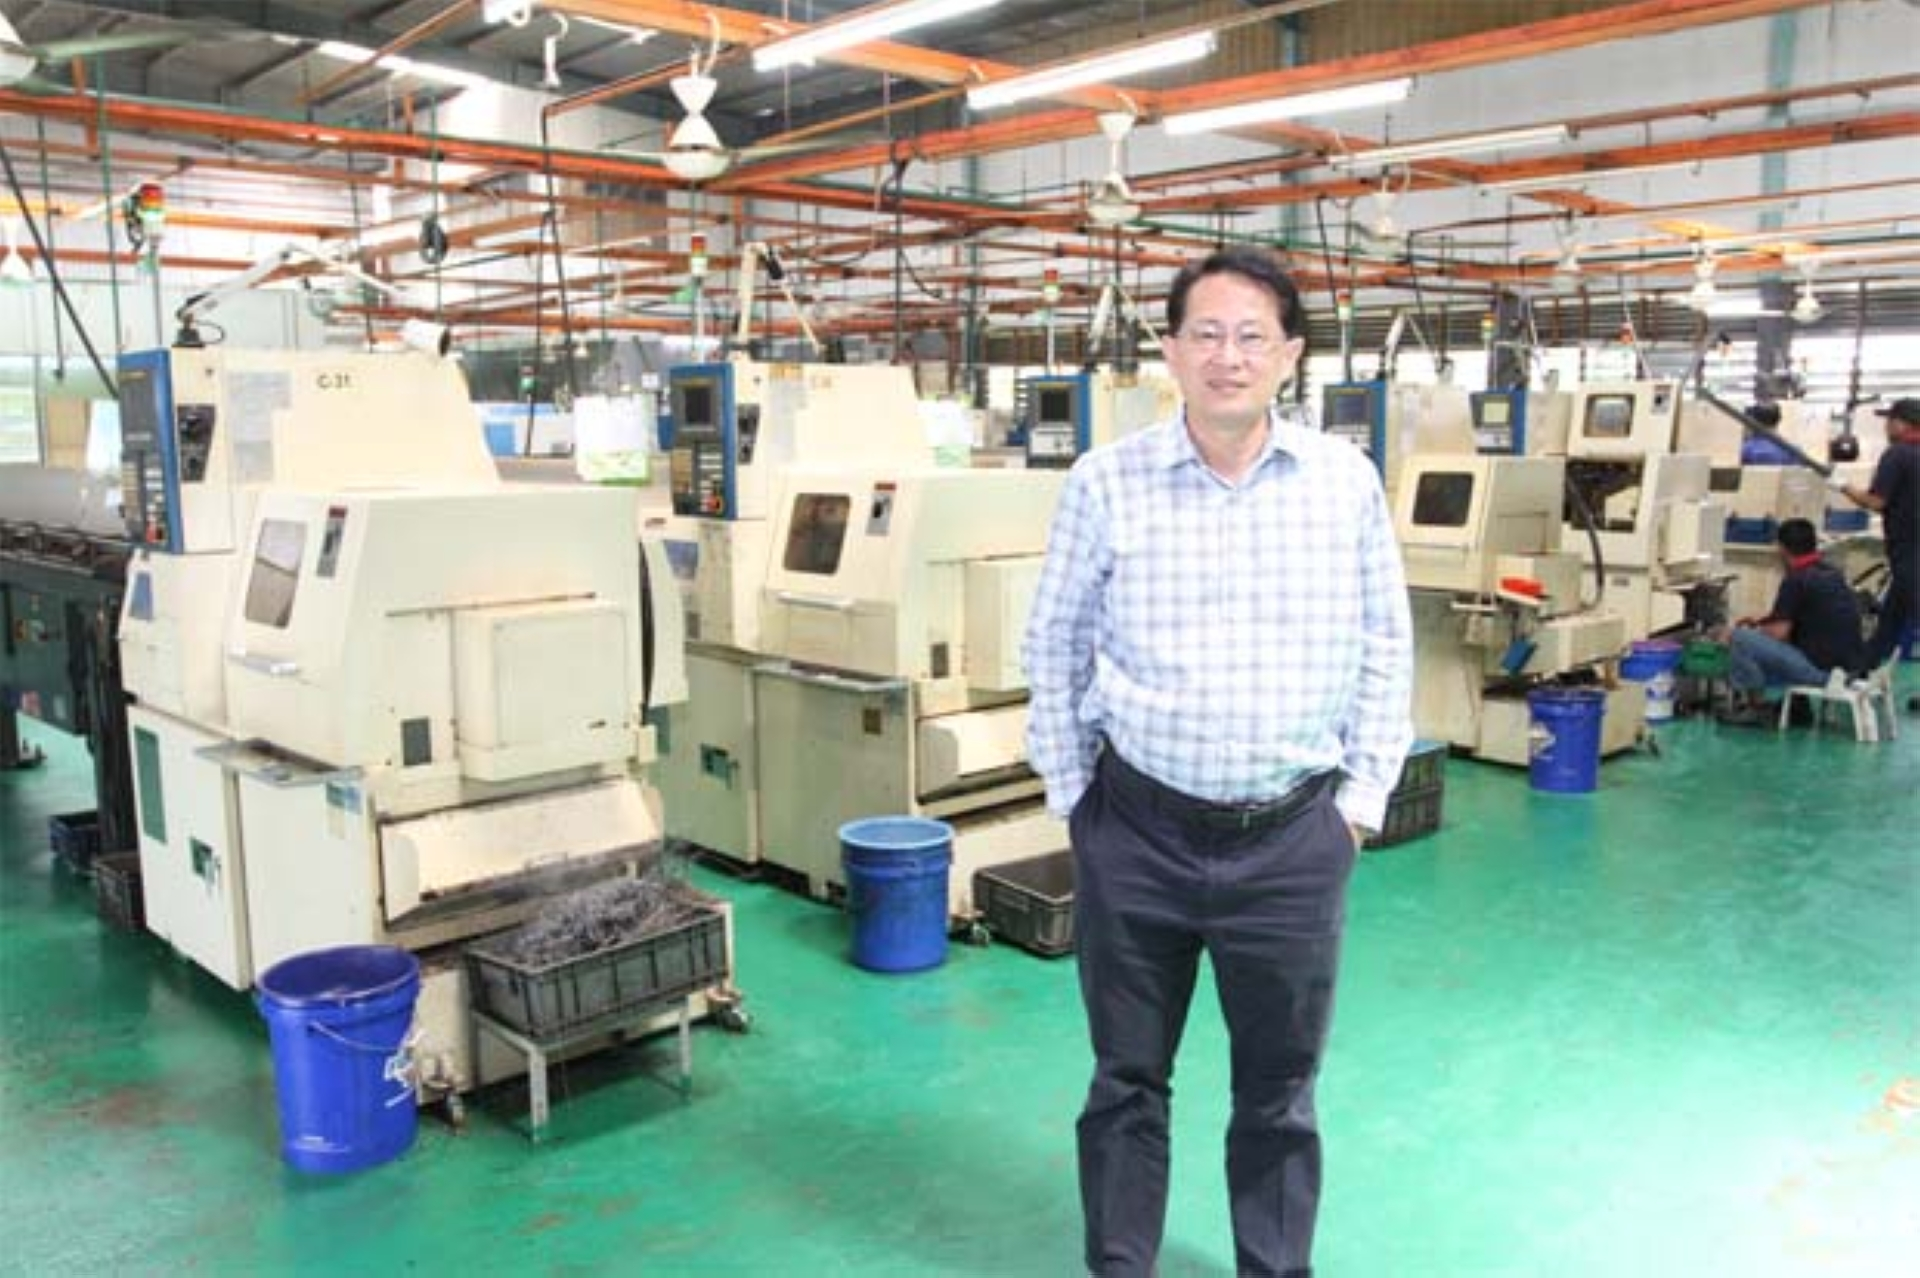 Techfast Holdings Bhd CEO Jason Yap Yoon Sing at the production line. - The Star